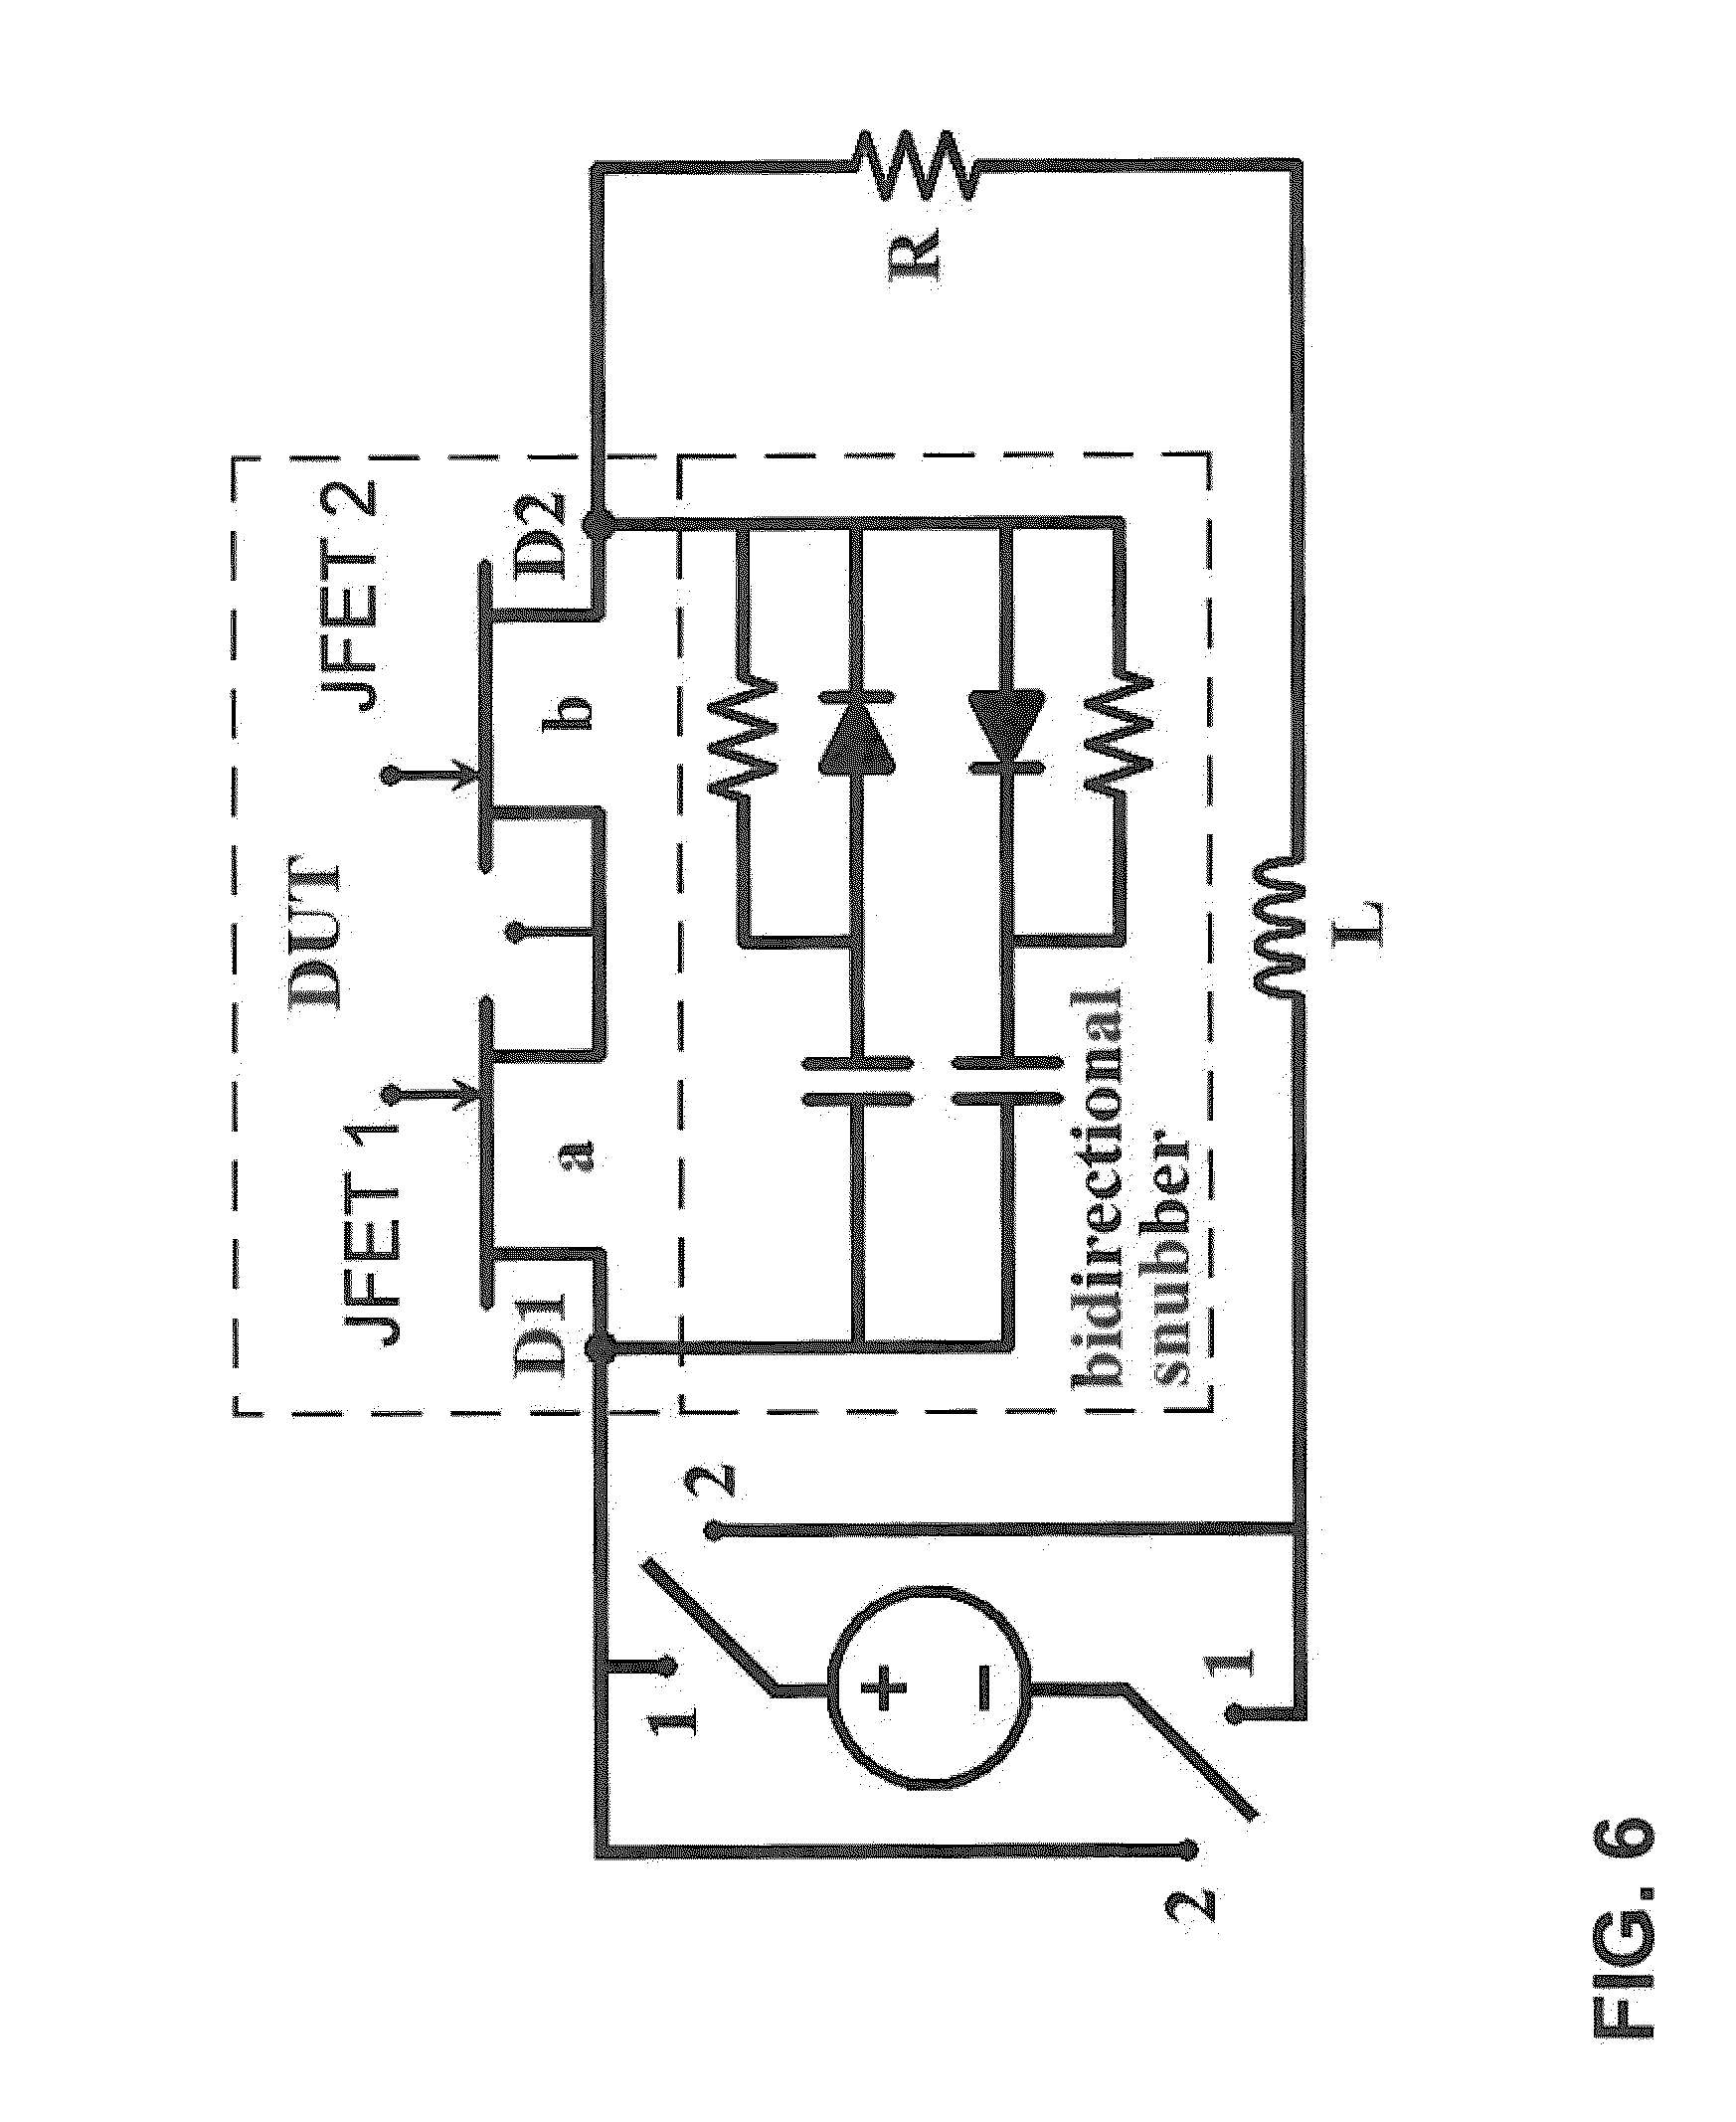 patent us8729739 - bi-directional circuit breaker